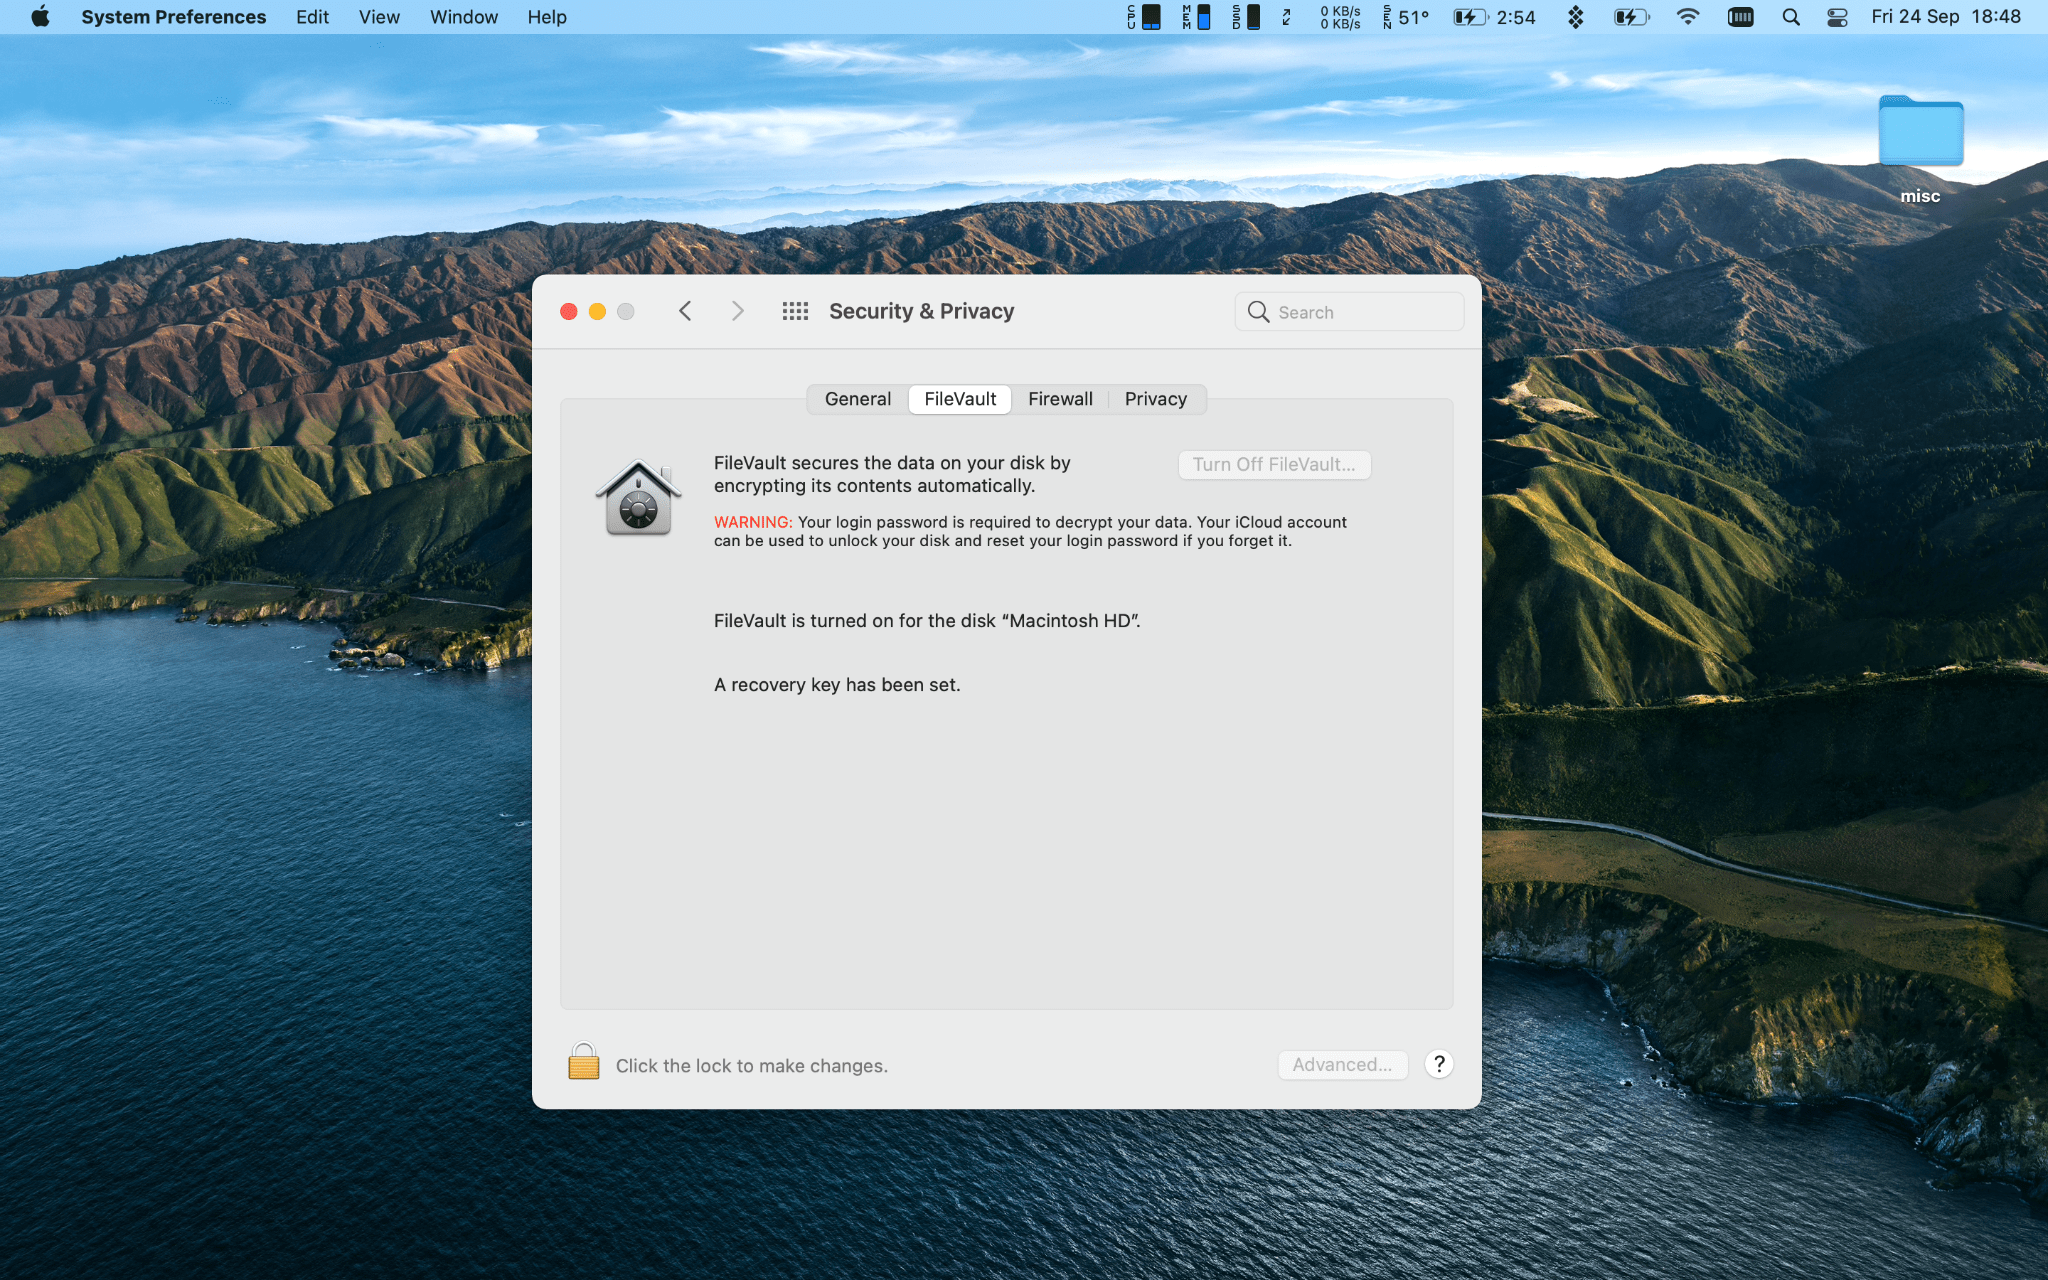 What is FileVault